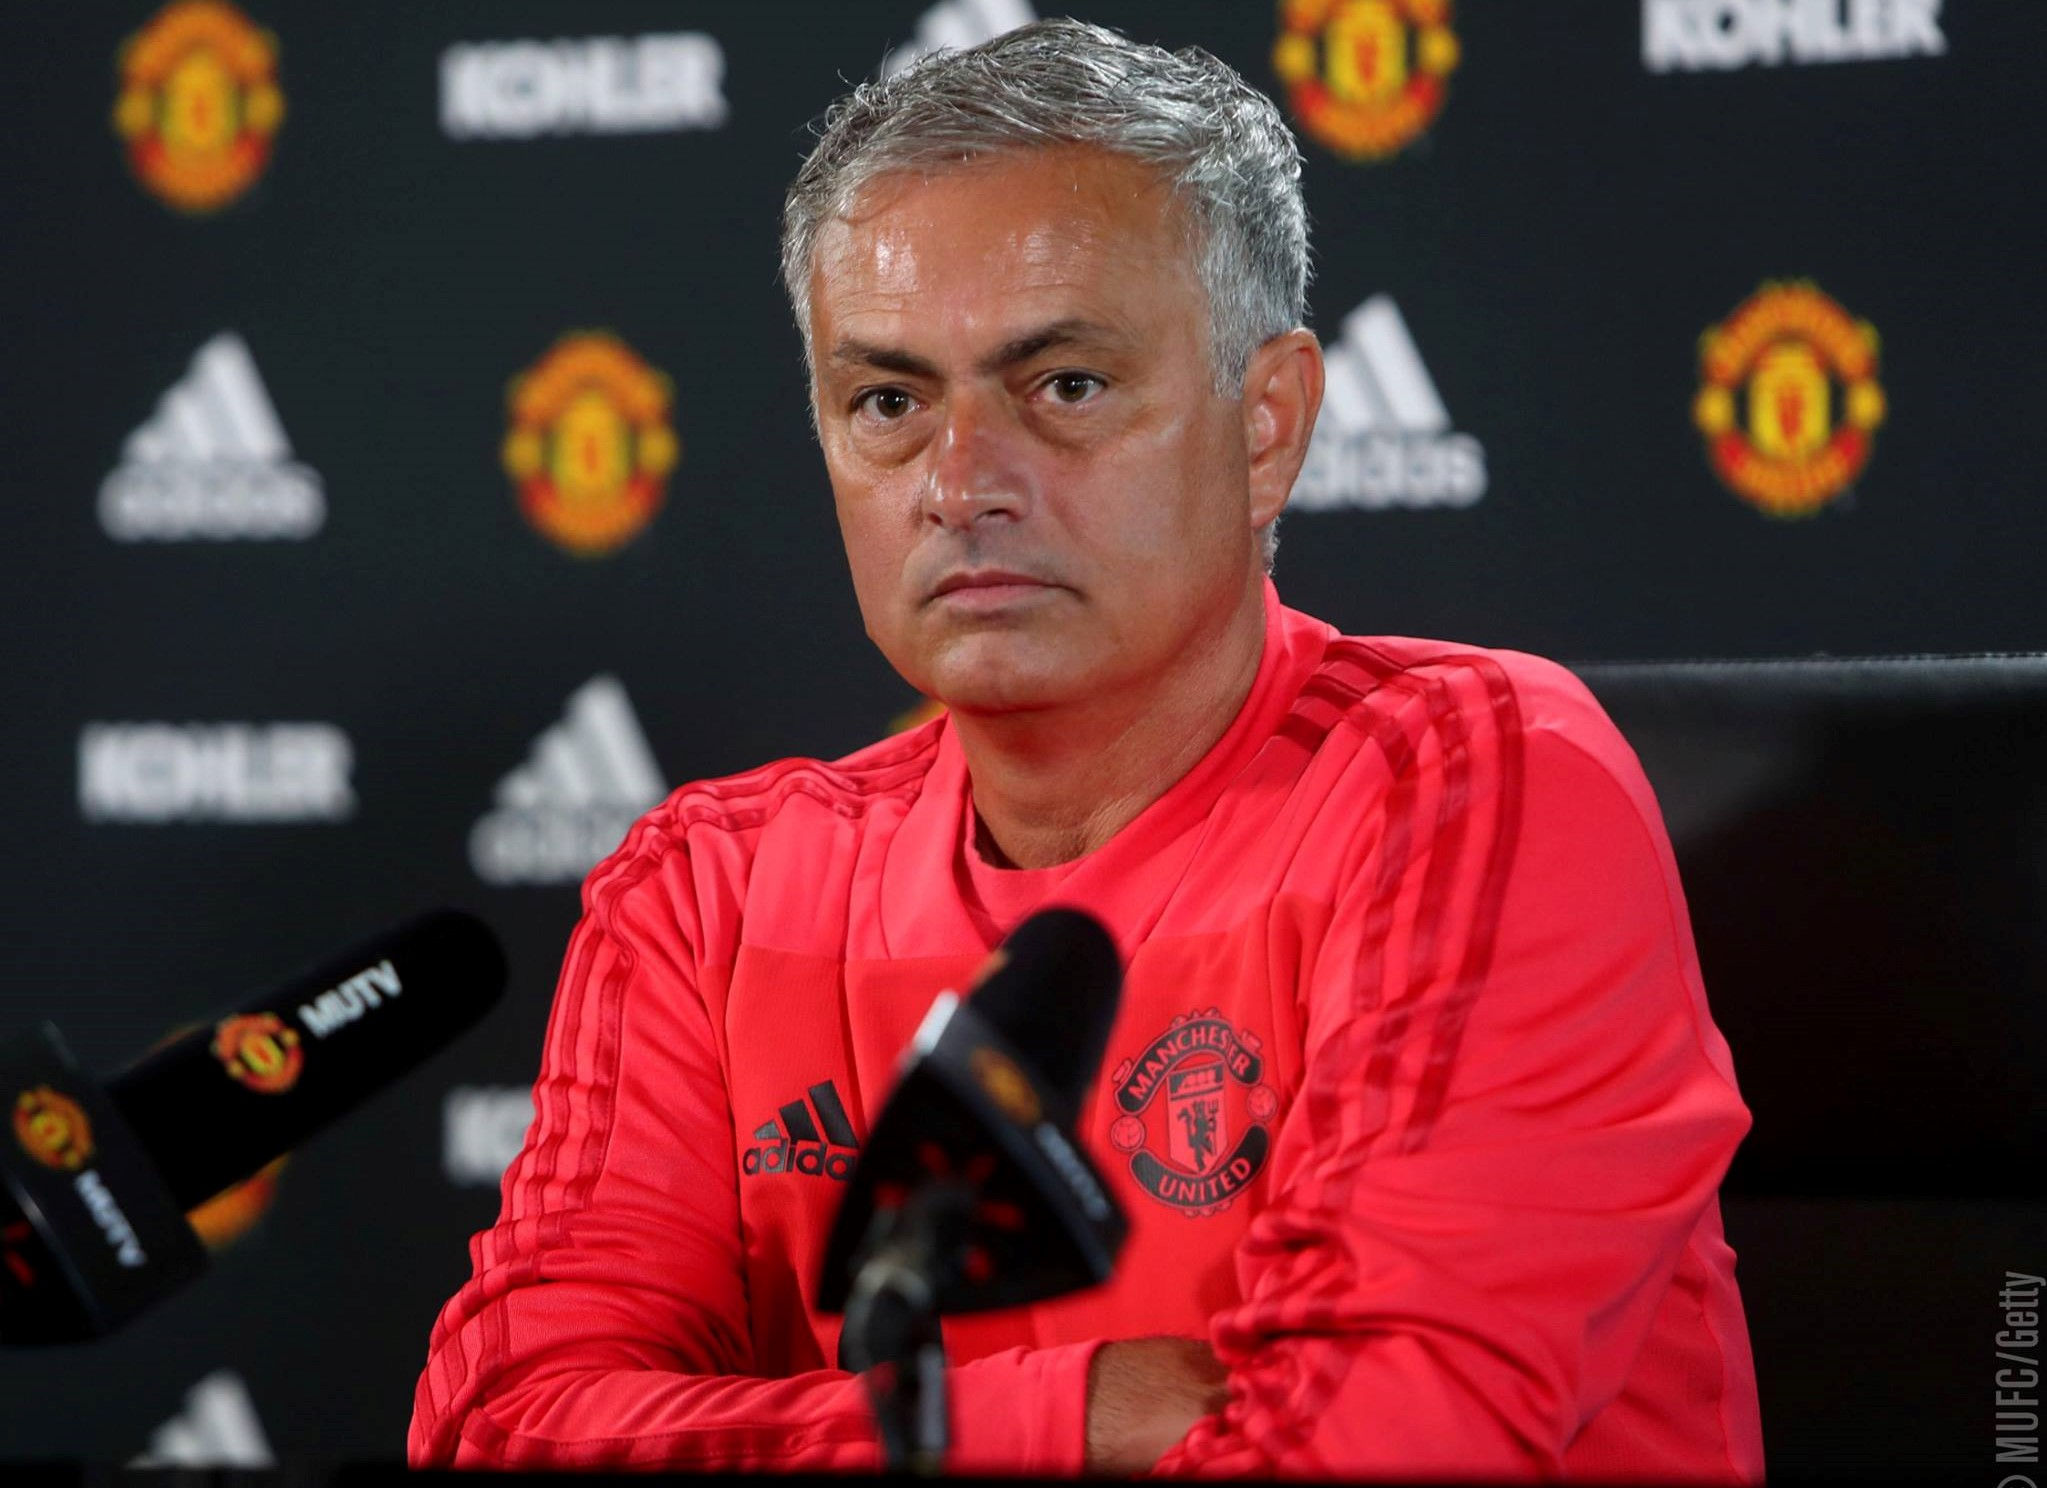 Are Jose Mourinho's Days Numbered at Manchester United?